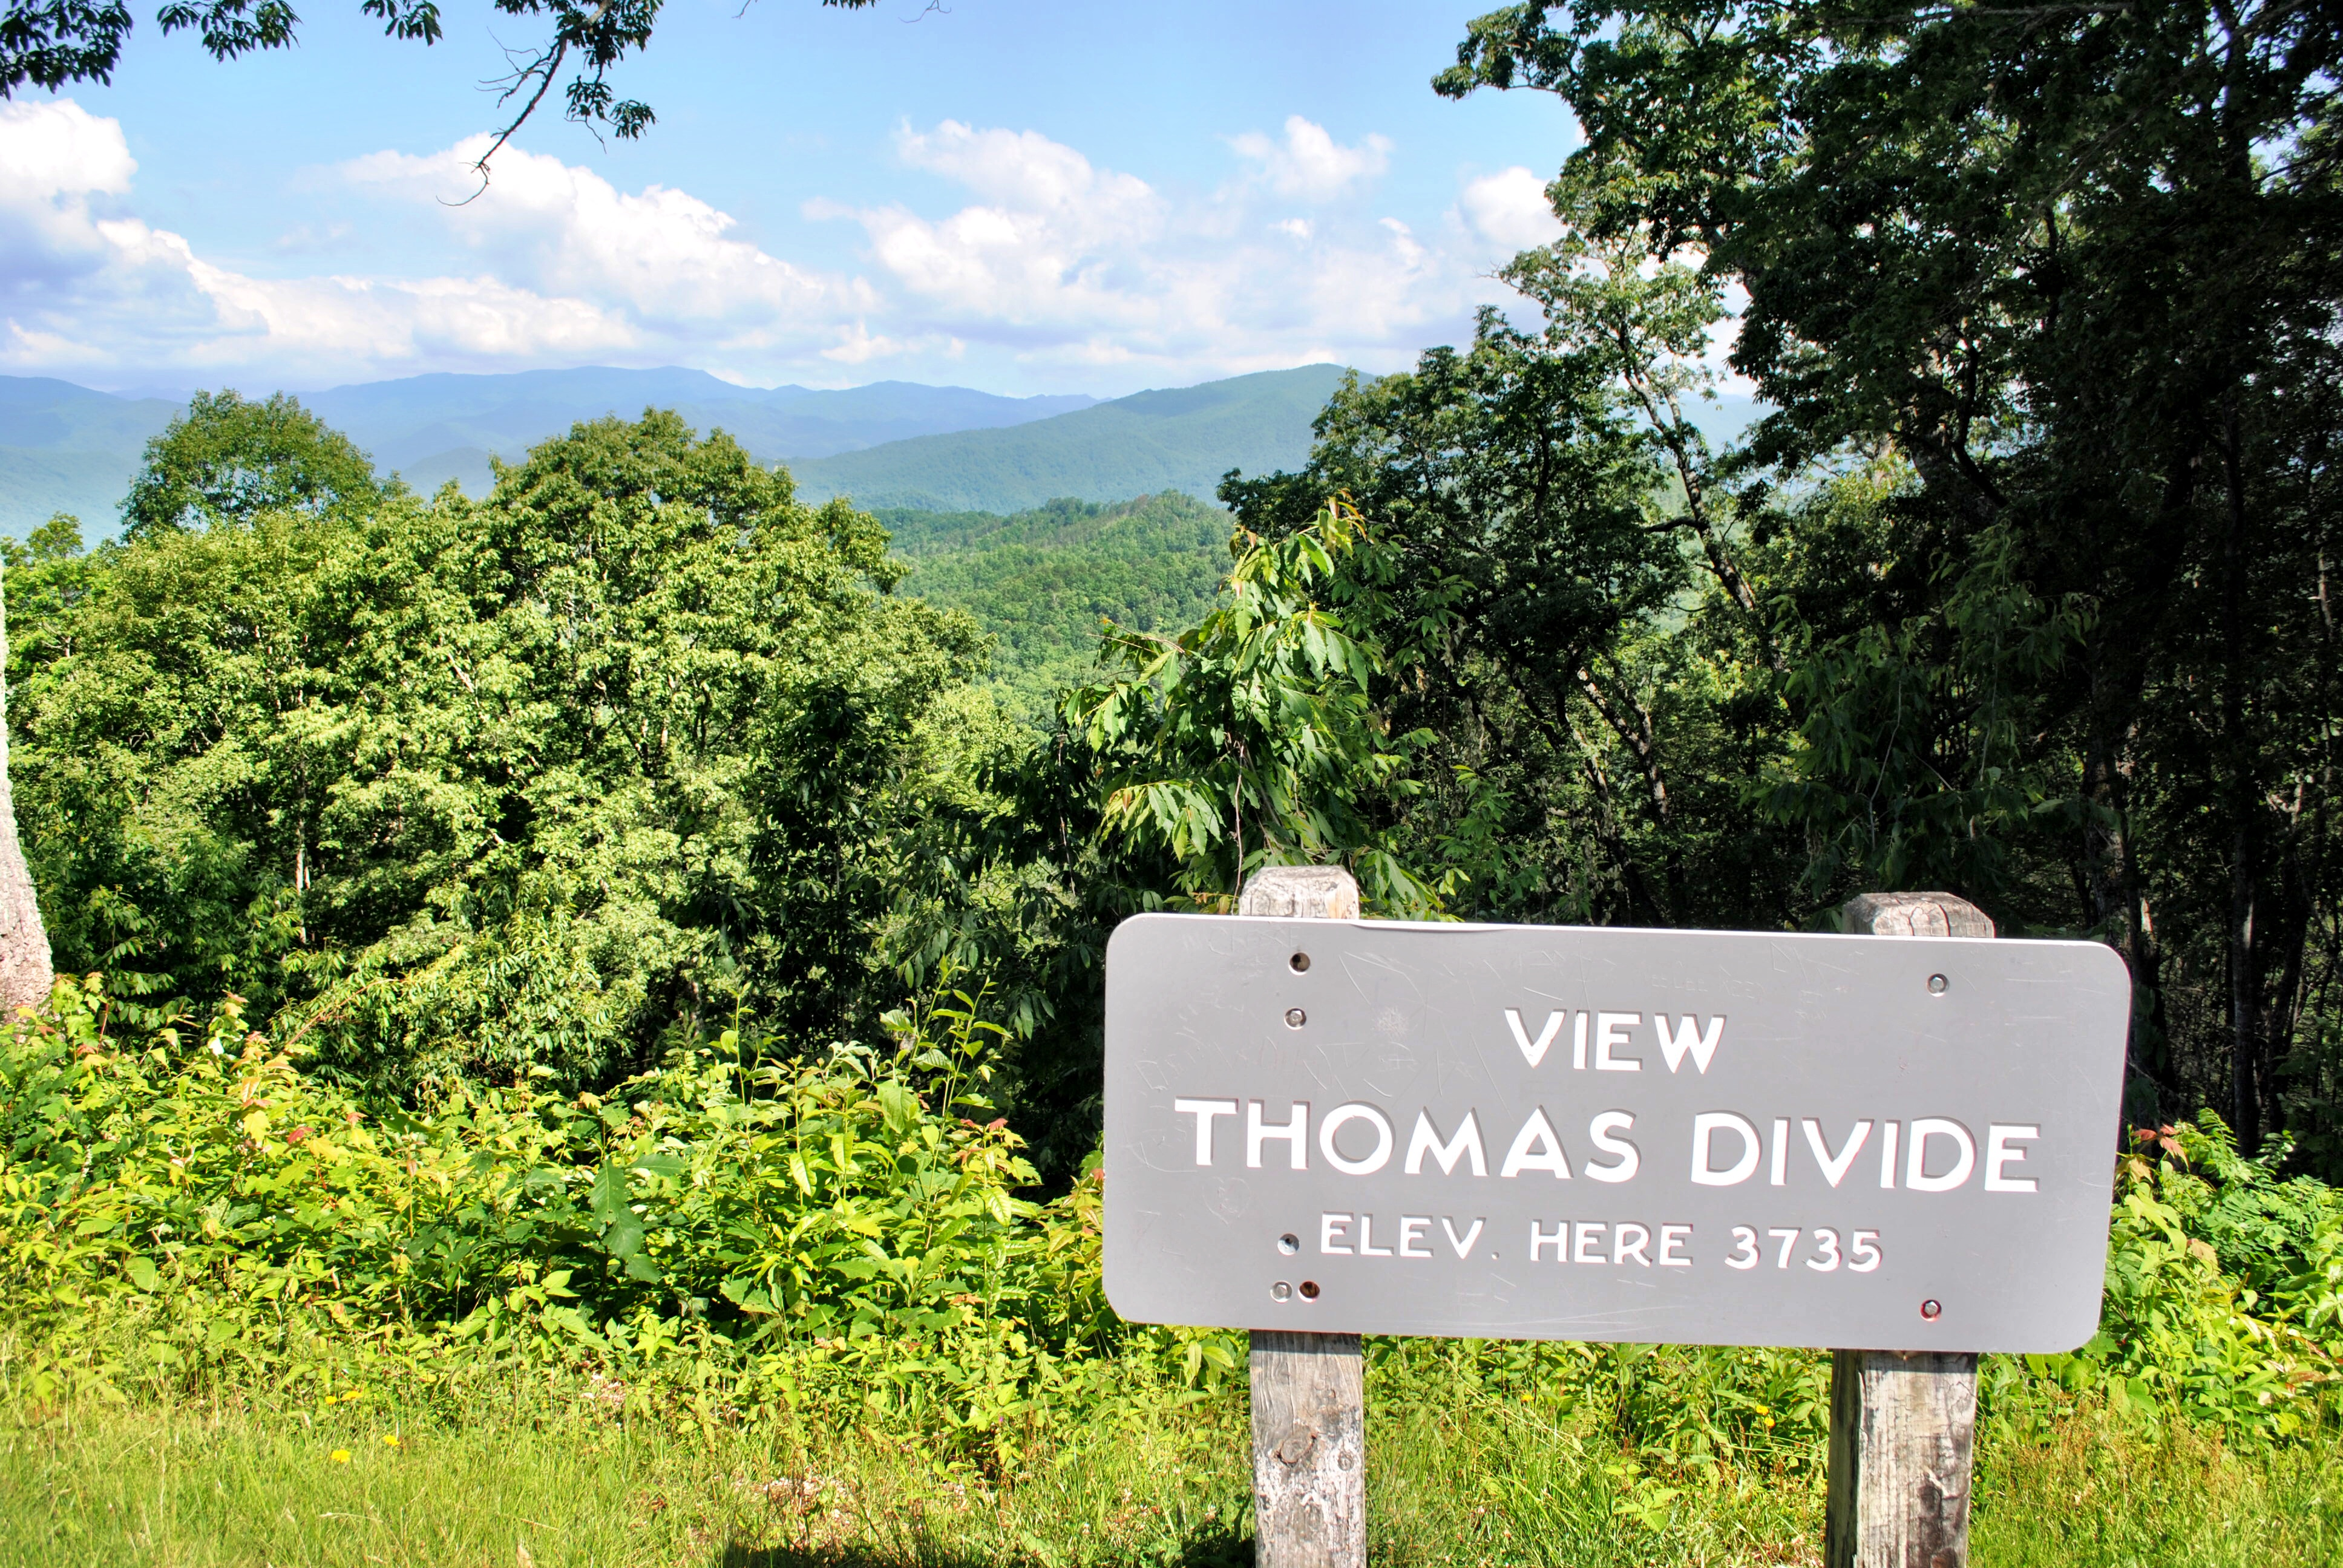 Thomas Divide View in North Carolina